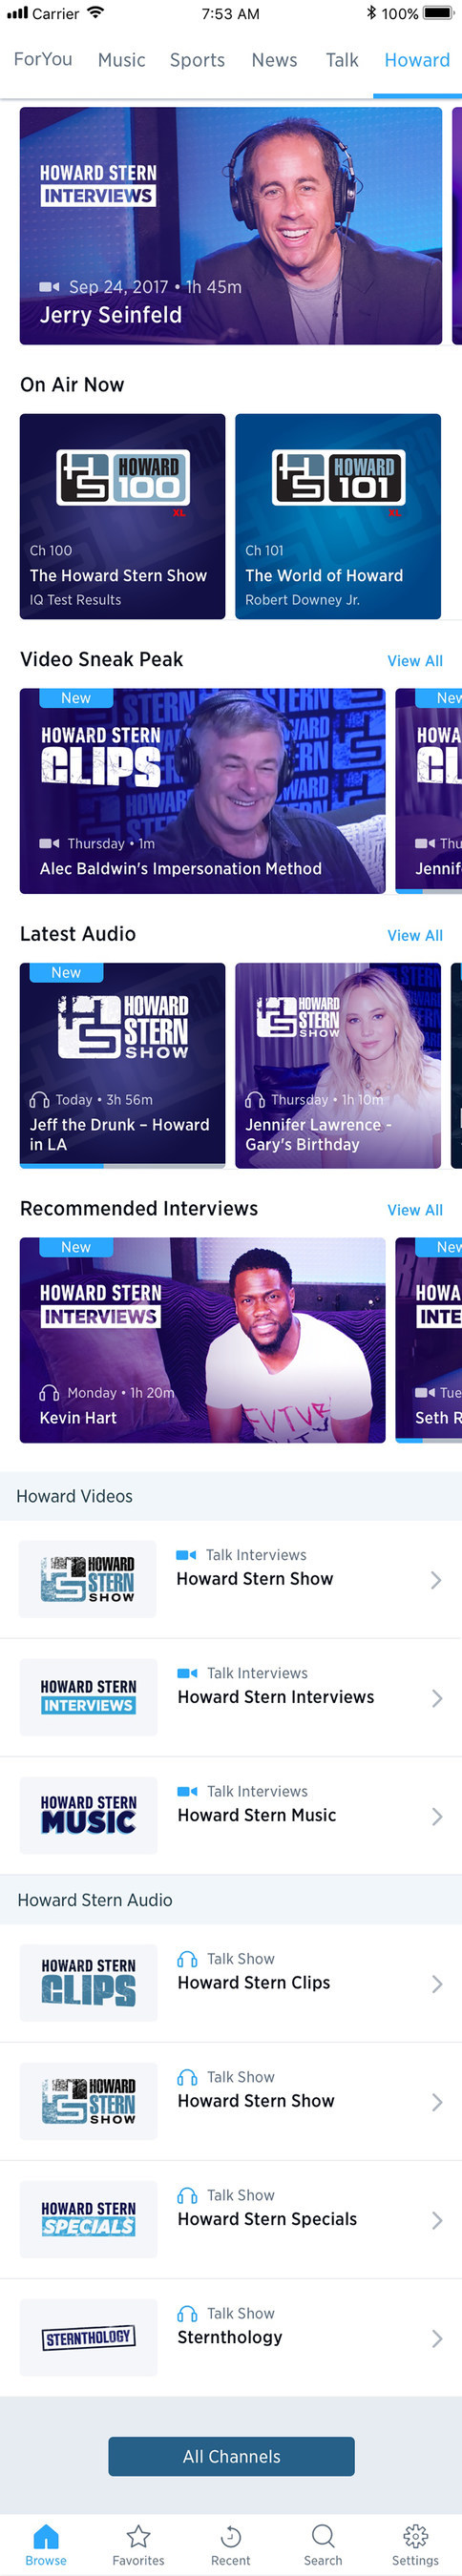 SiriusXM's library of recorded On Demand content features more than 5,000 hours of programming, and the new SiriusXM app makes it much easier to access shows, interviews, specials, and performances whenever it is most convenient for you. (Phone, scrolling view)